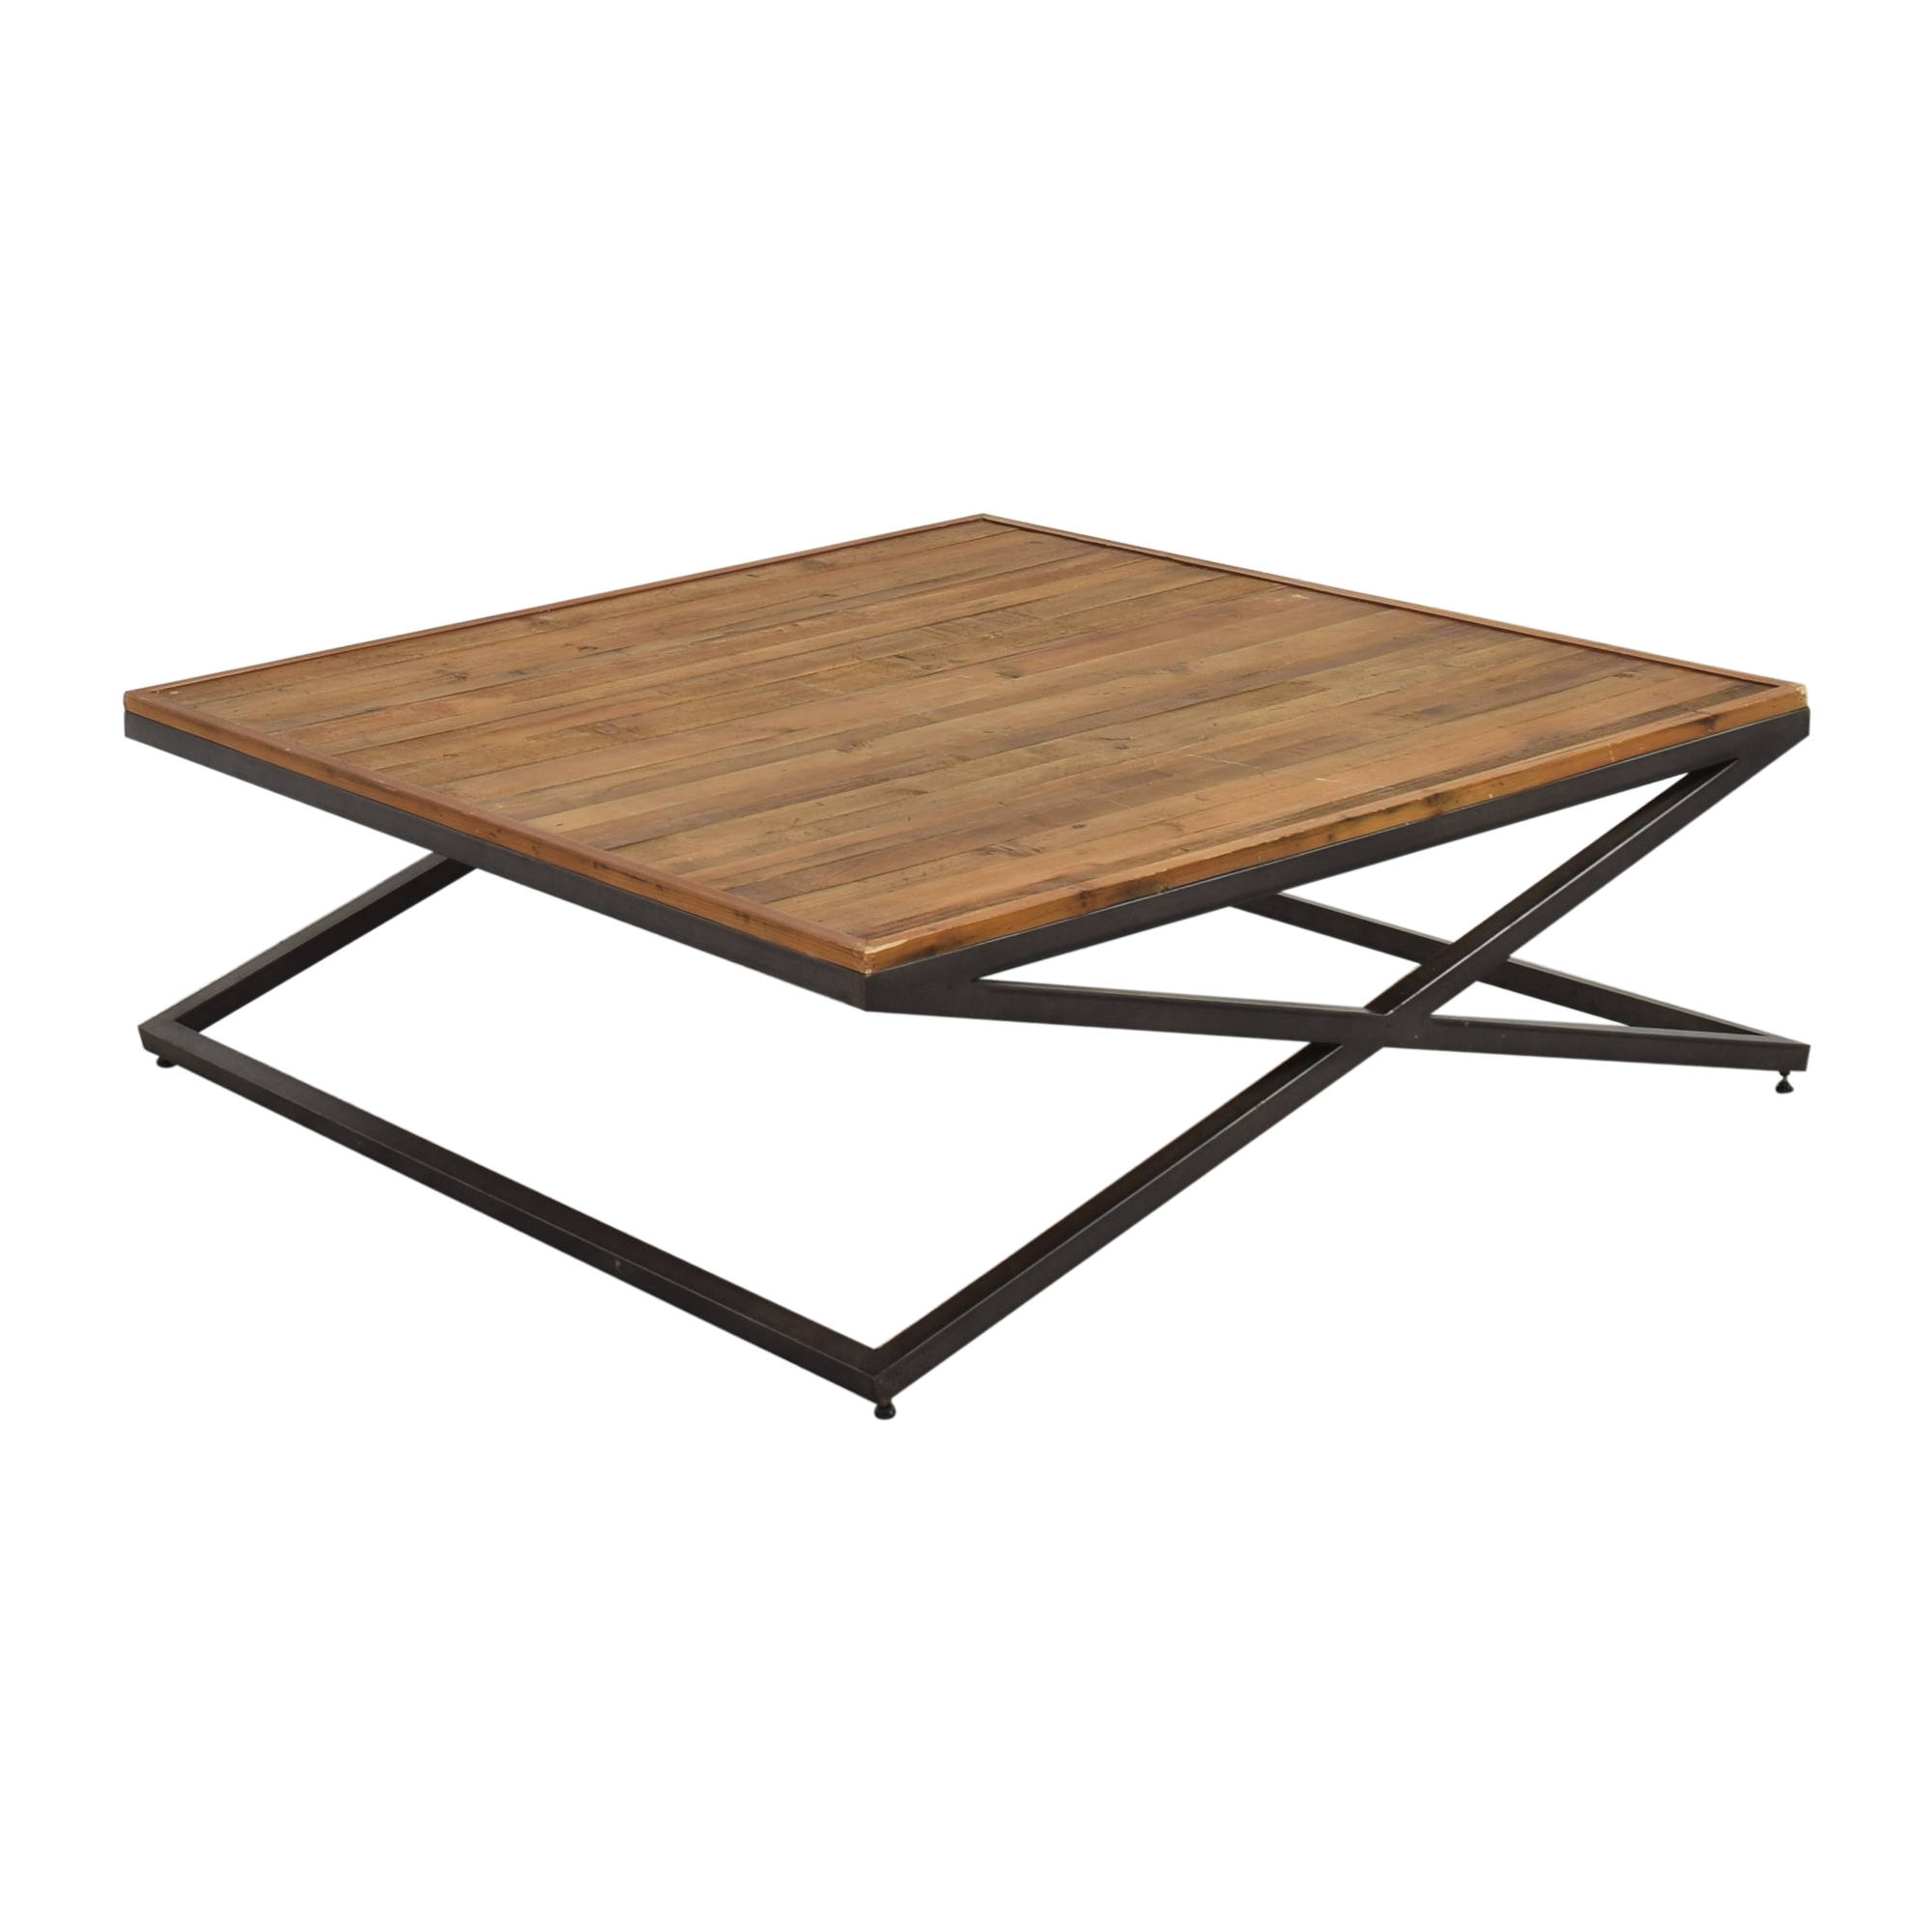 Four Hands Four Hands Jax Square Coffee Table discount